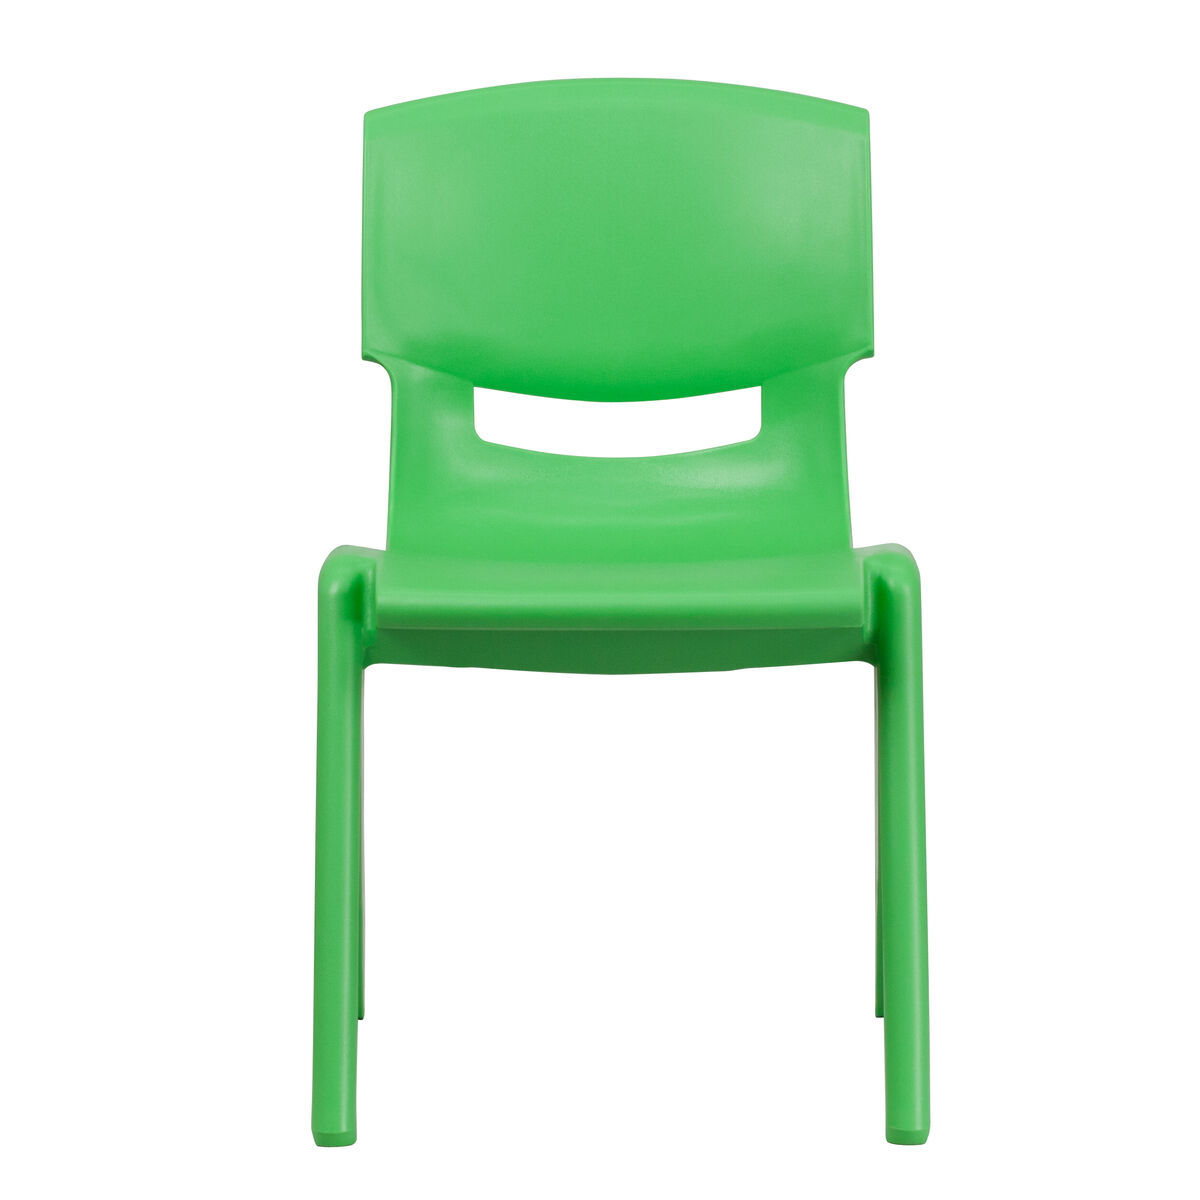 Green Plastic Stackable School Chair With 15.5'' Seat